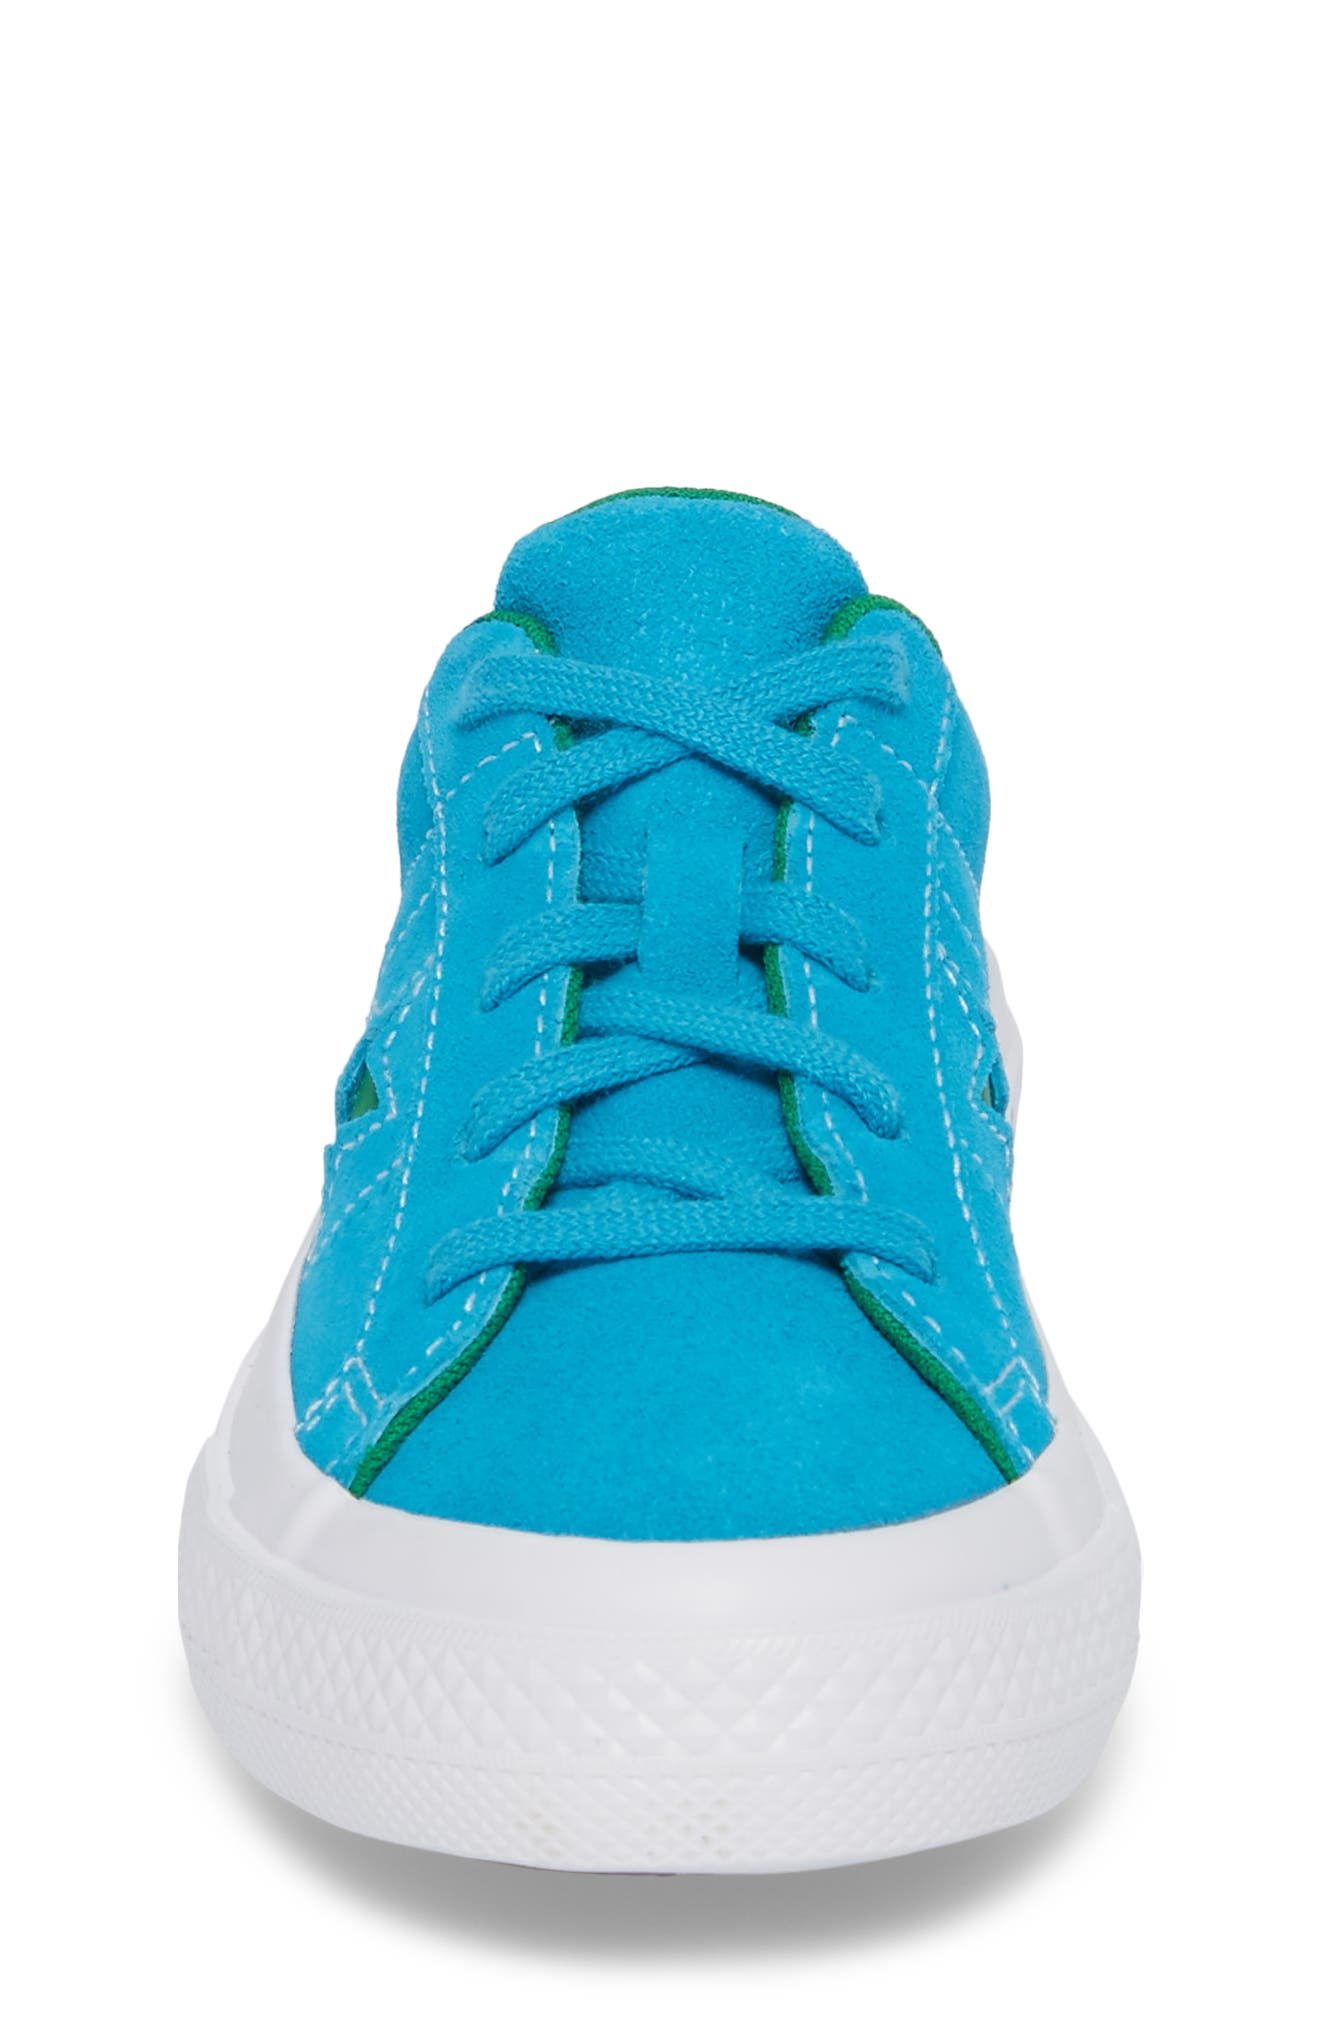 Chuck Taylor<sup>®</sup> All Star<sup>®</sup> One Star Leather Platform Sneaker,                             Alternate thumbnail 4, color,                             Hawaiian Ocean